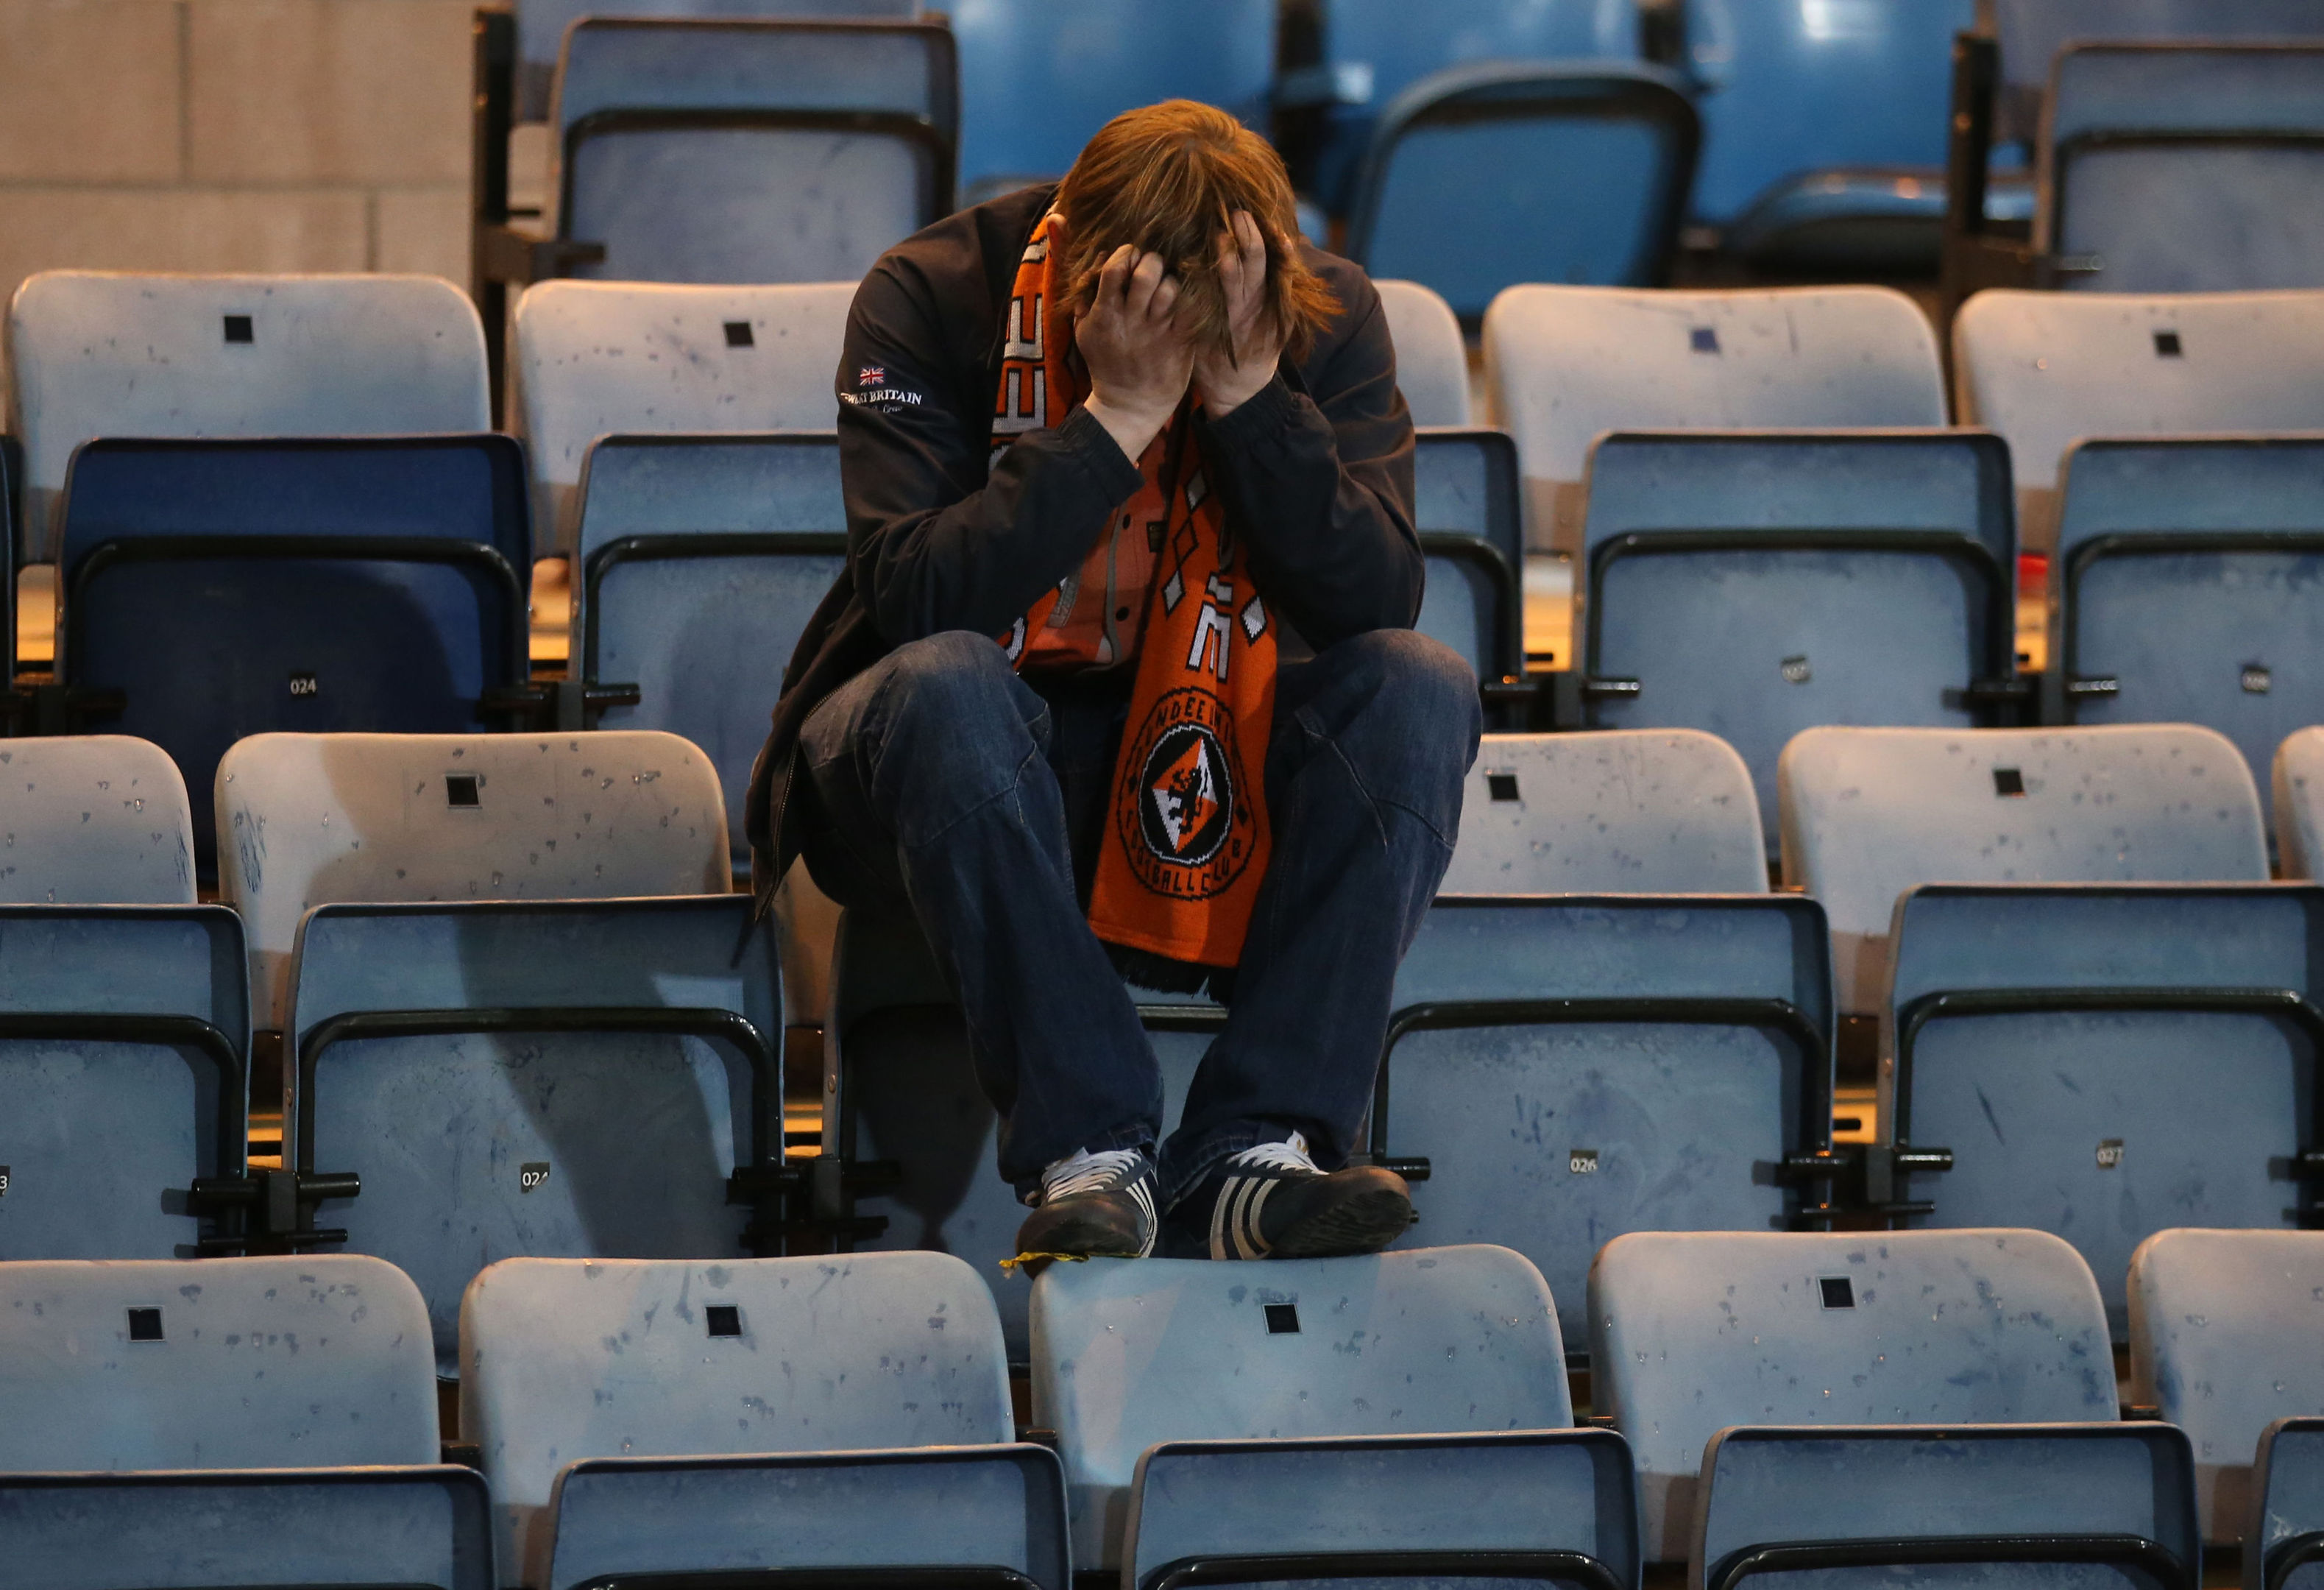 A Dundee United fan appears dejected after his side is relegated at Dens Park